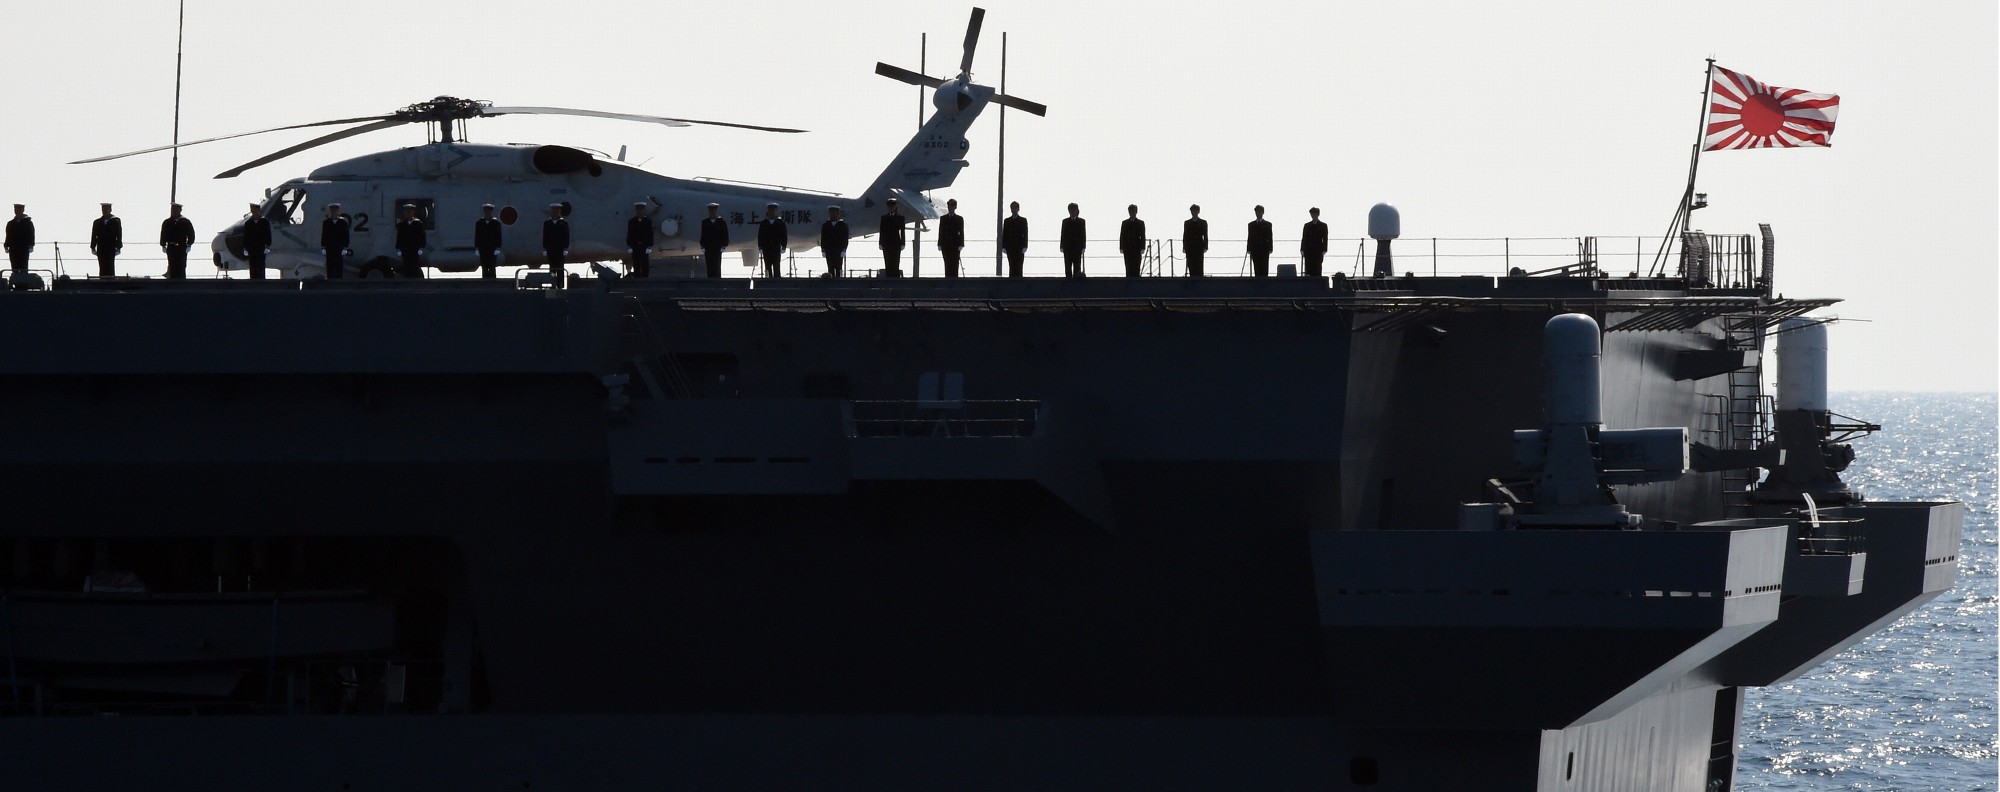 Japan's Izumo helicopter carrier. Photo: AFP